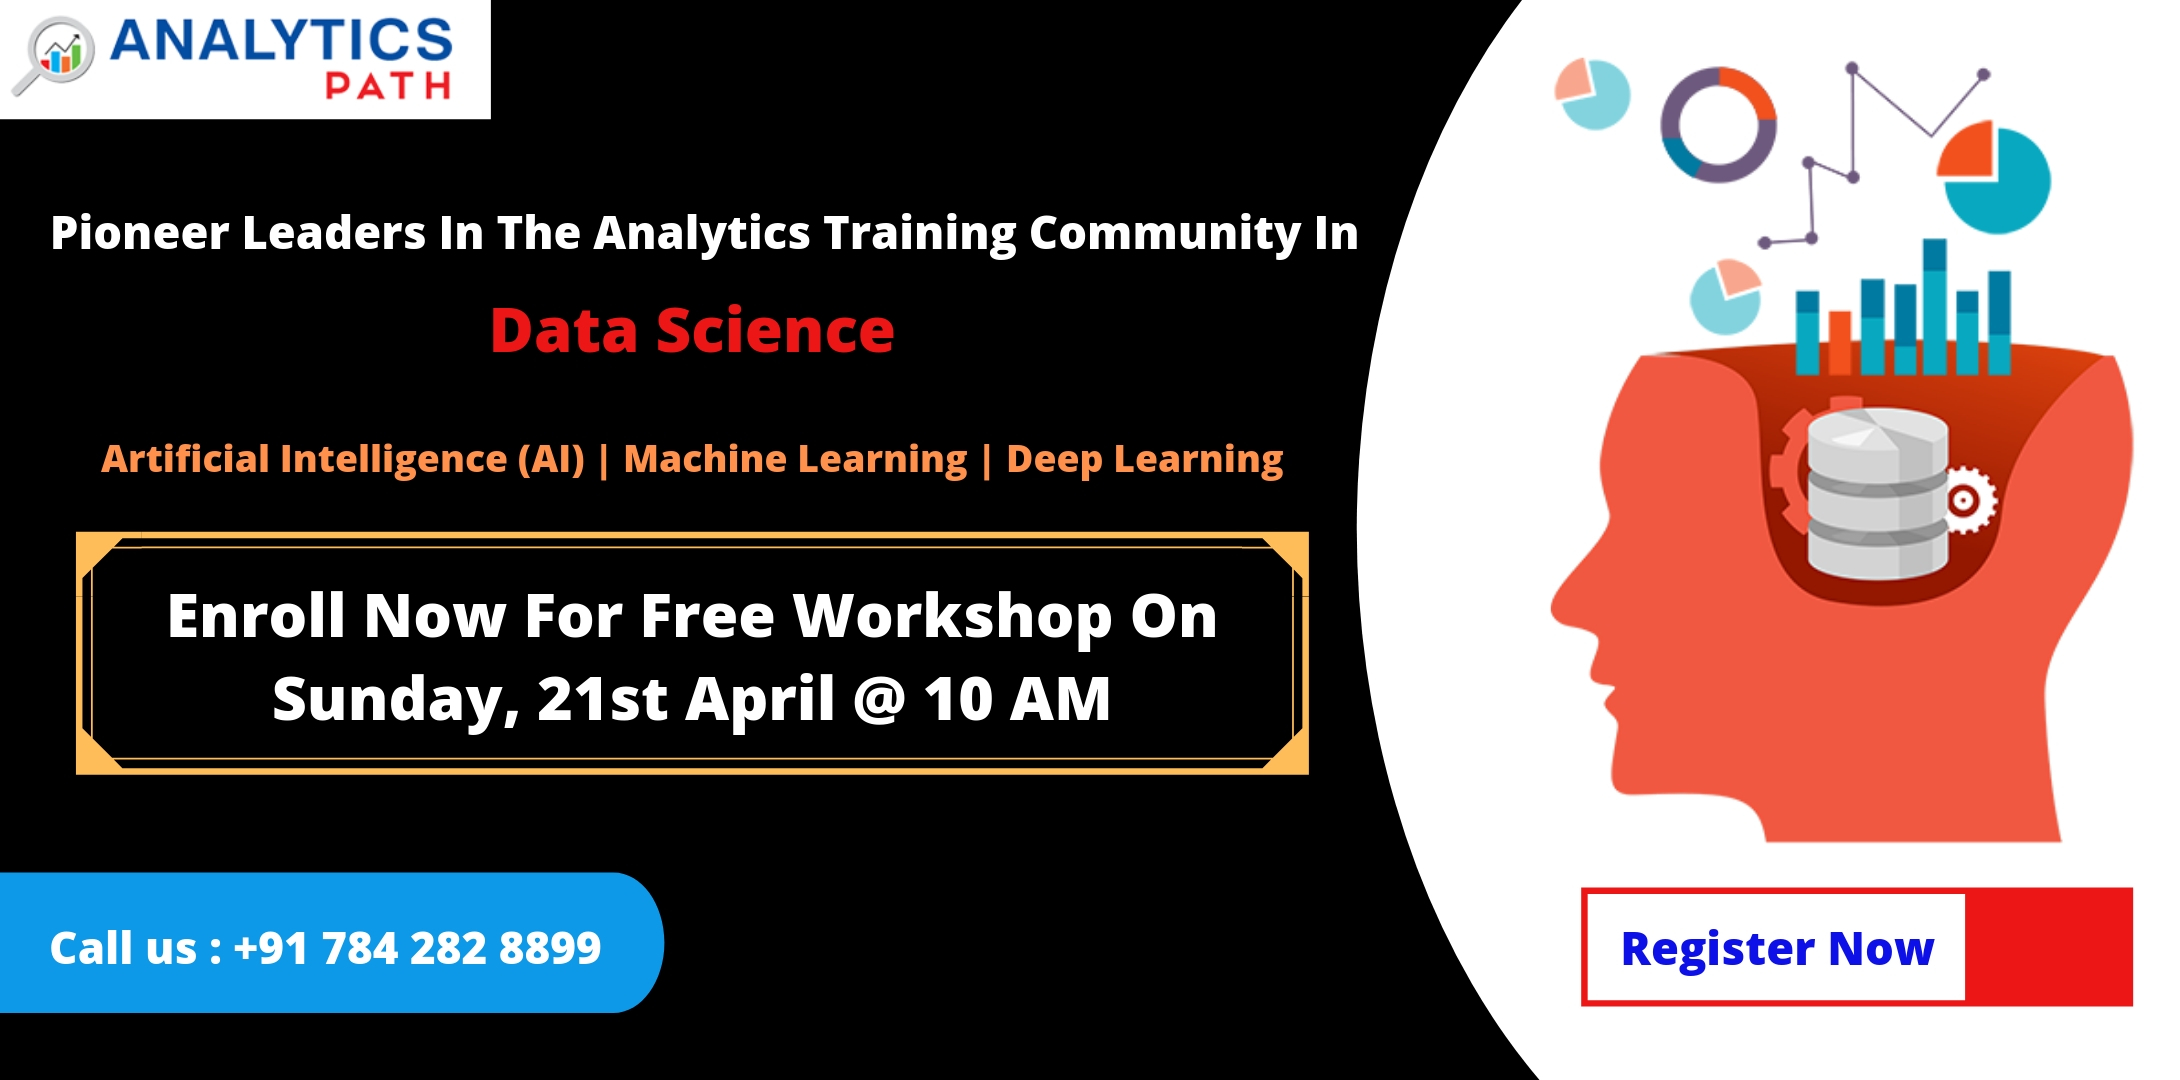 Attend Free Data Science  Workshop By Analytics Path On 21st April,10AM, Hyd, Hyderabad, Telangana, India